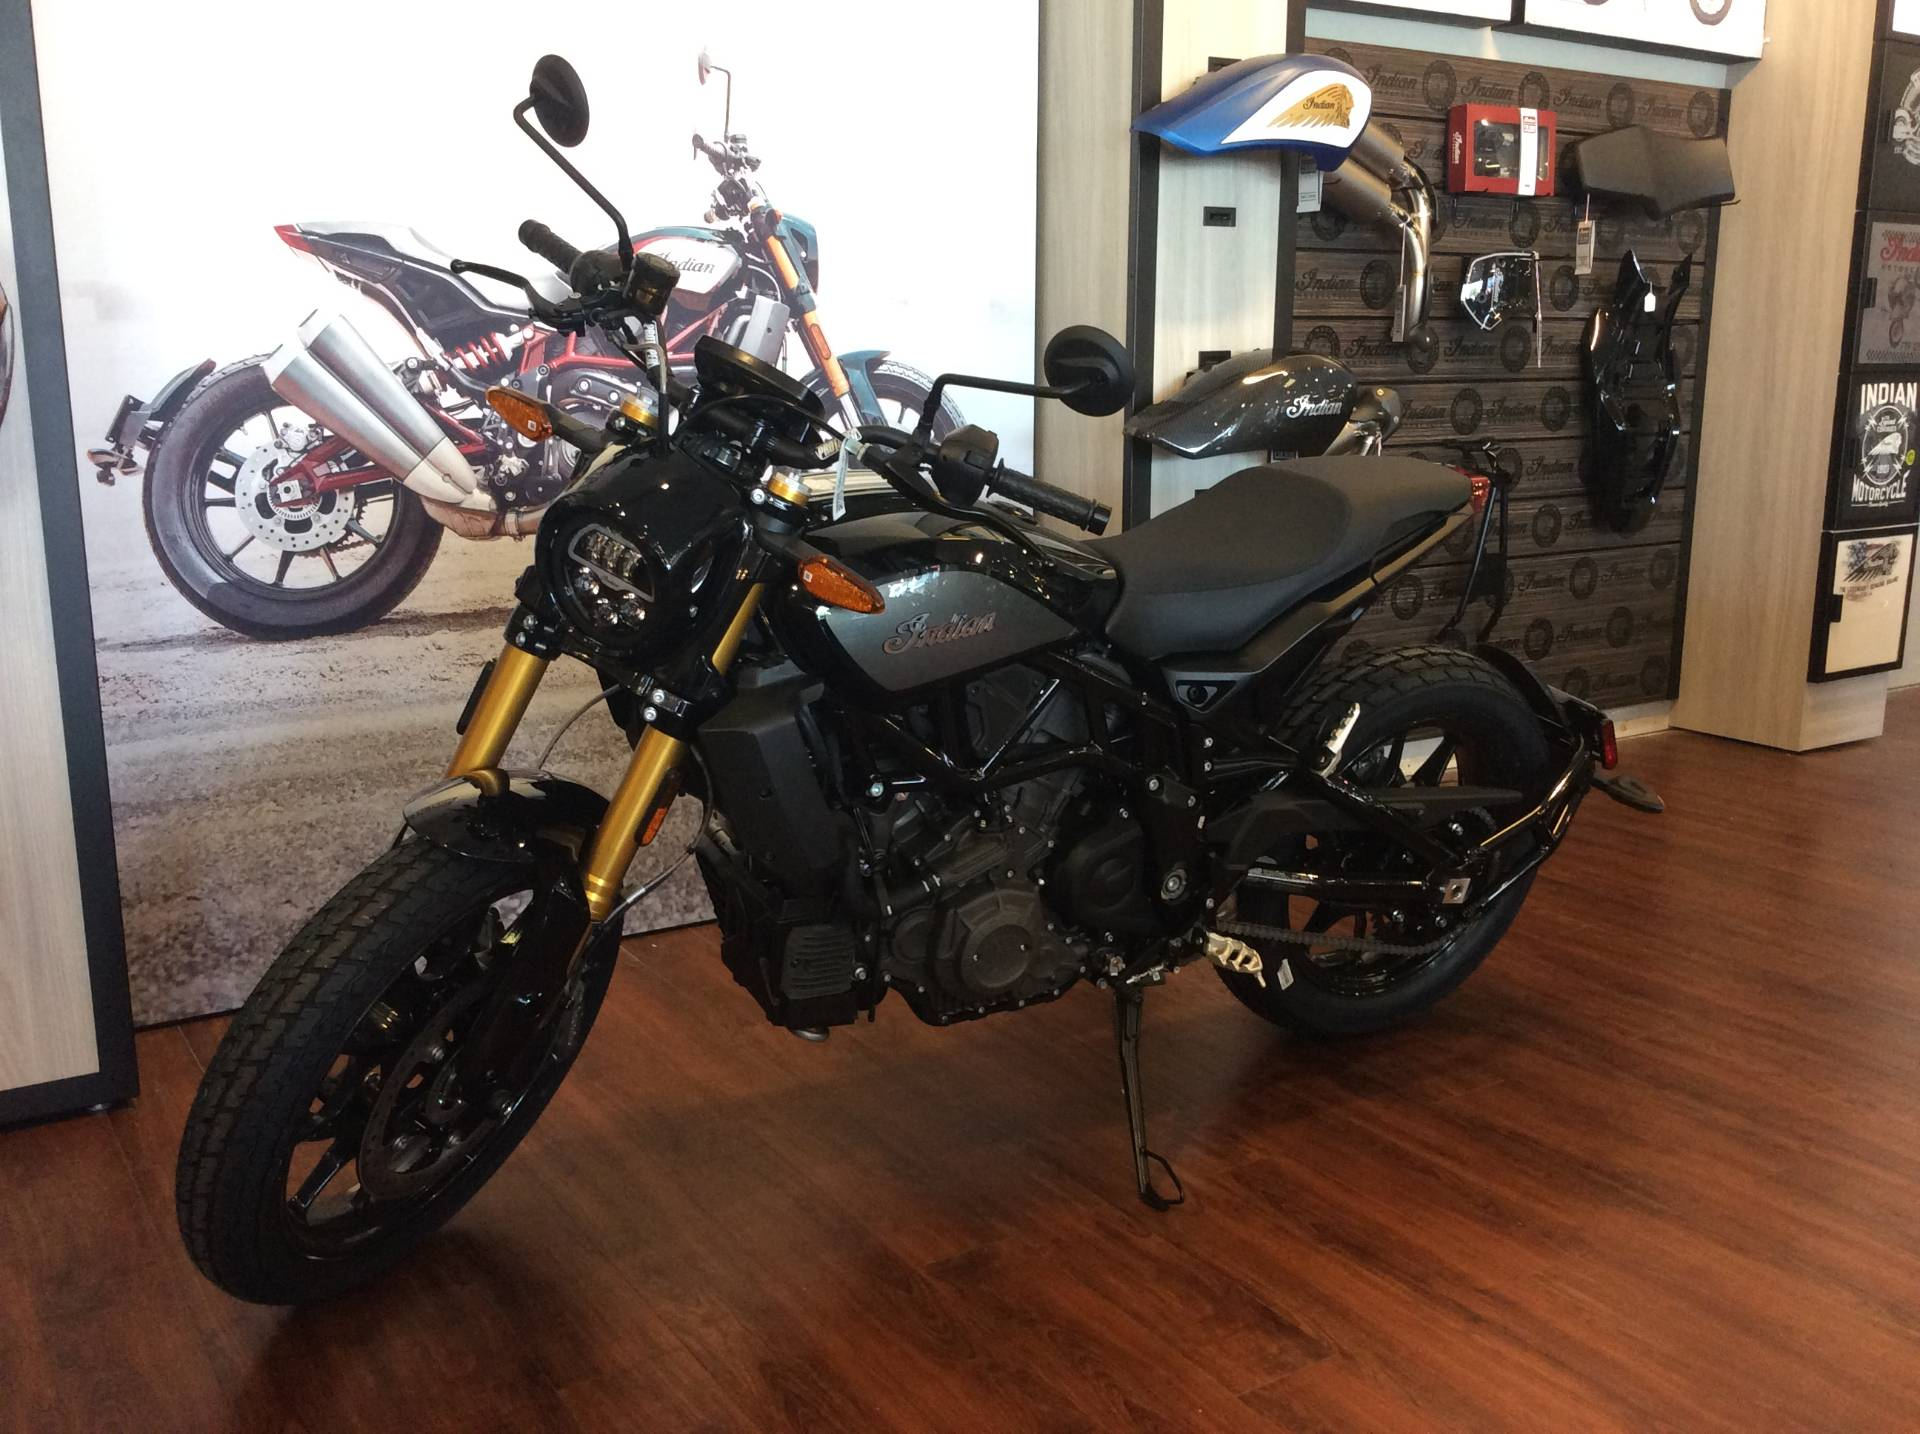 2019 Indian FTR™ 1200 S in Staten Island, New York - Photo 7